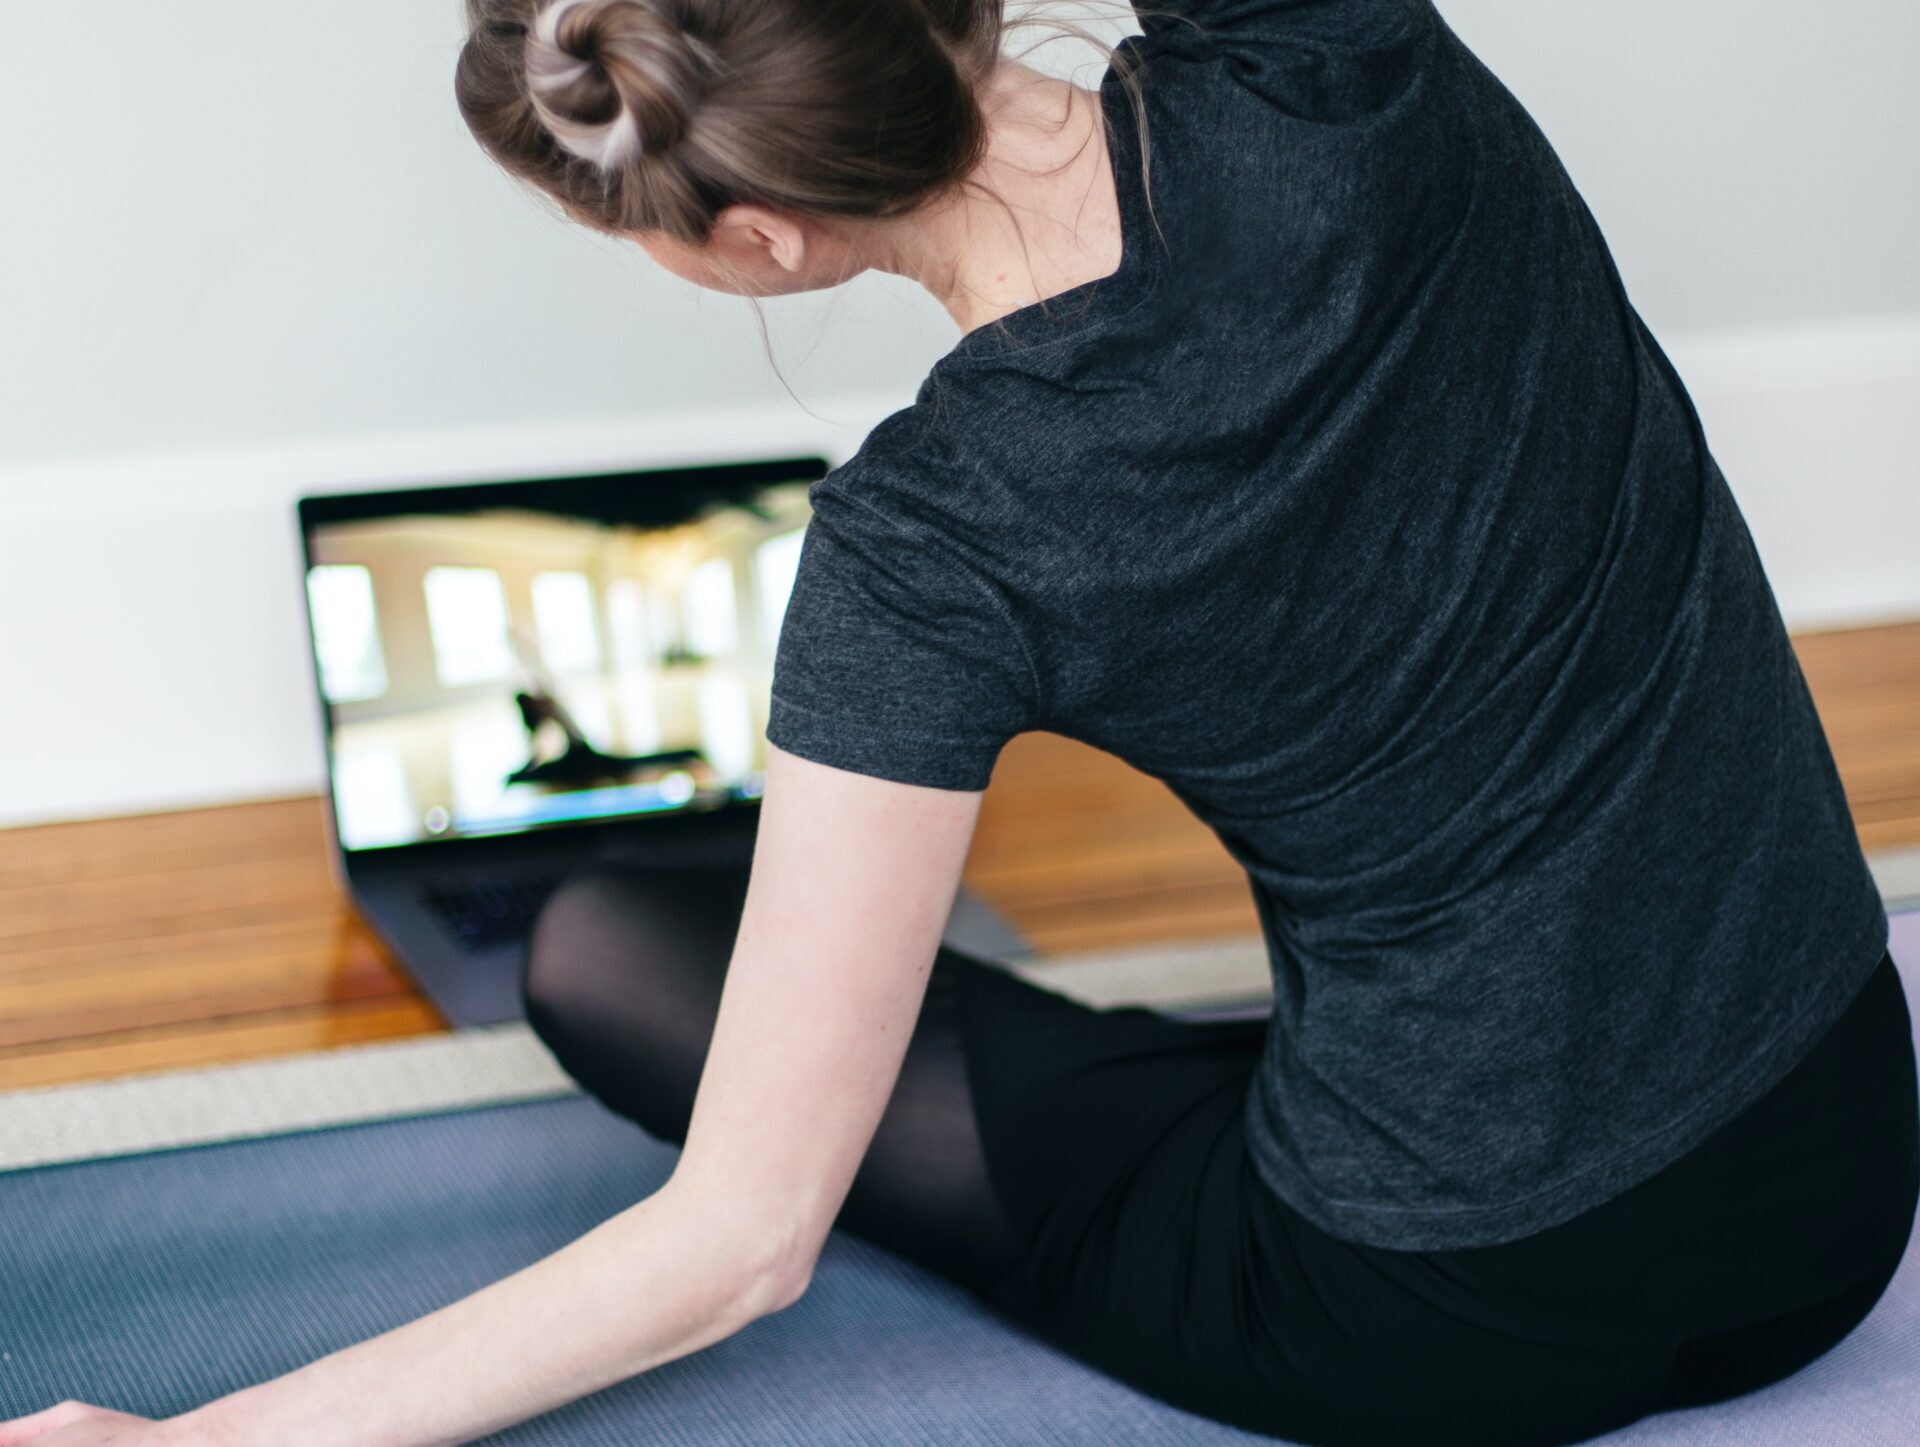 home workout via zoom - girl and her laptop